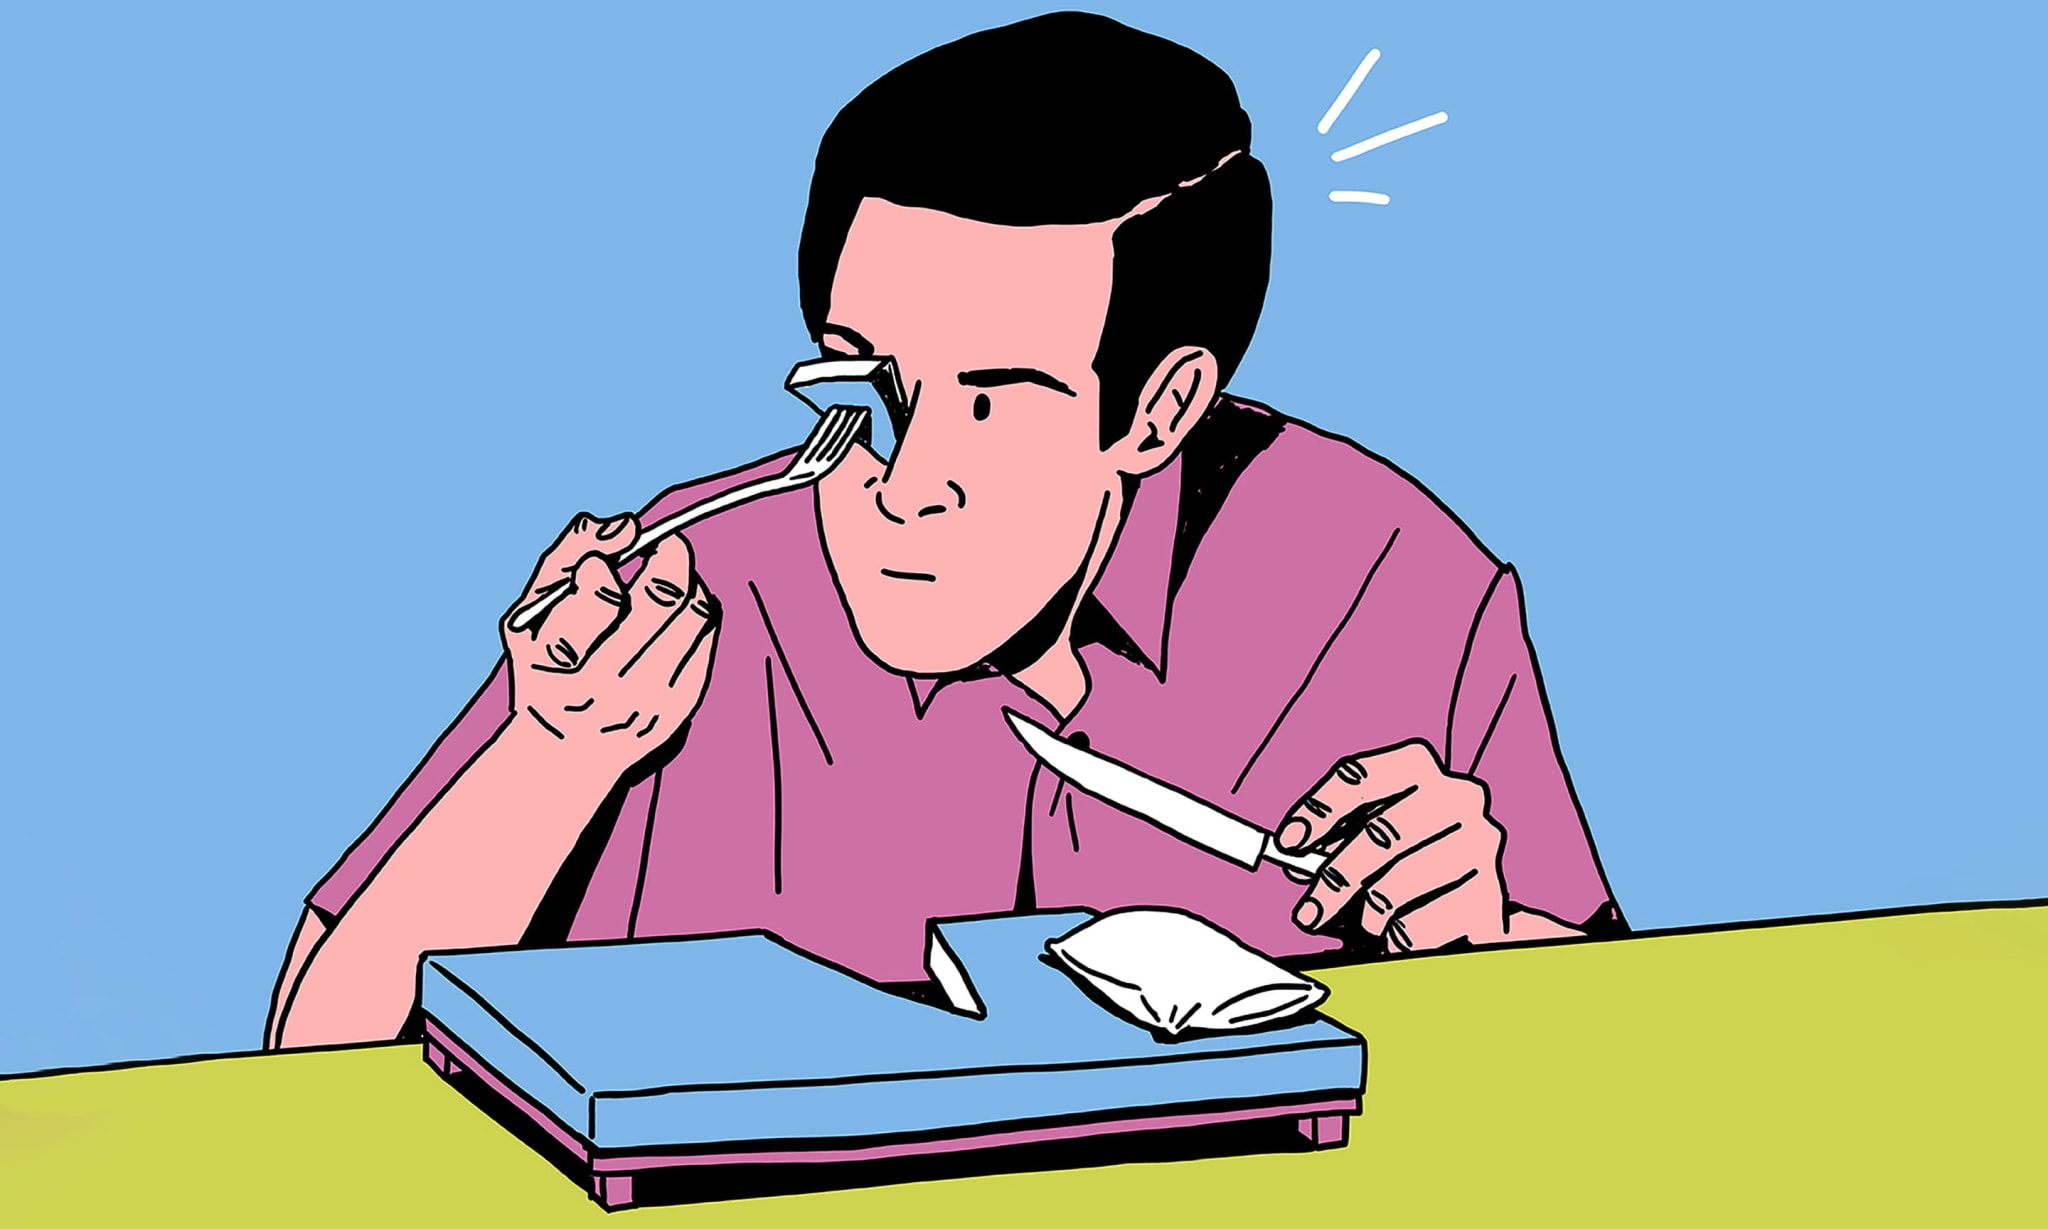 An illustration of a man eating a bed with a knife and fork but putting a slice in his eye.